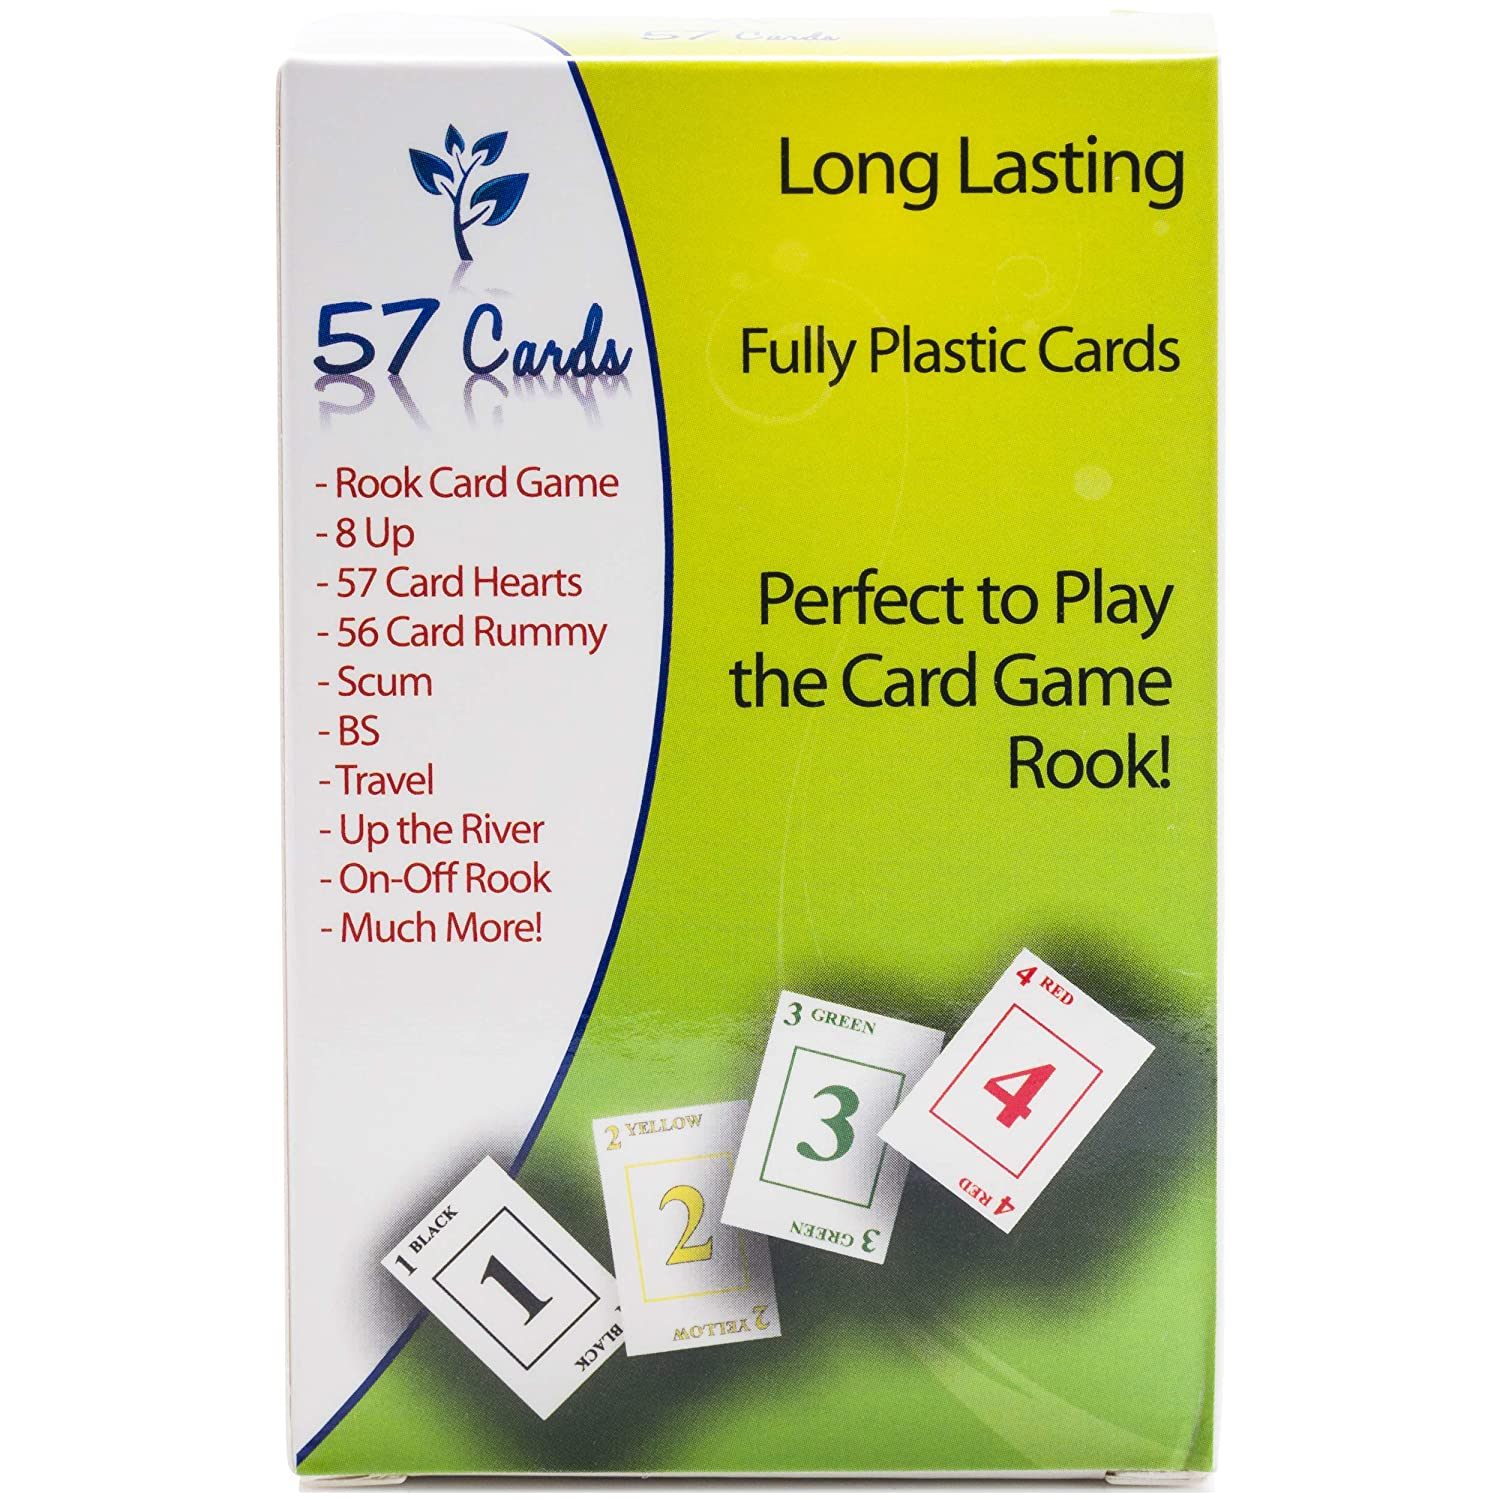 b400bc4e2a Amazon.com  57 Cards Plastics  Premium Rook Quality Cards  Green Backs    Toys   Games